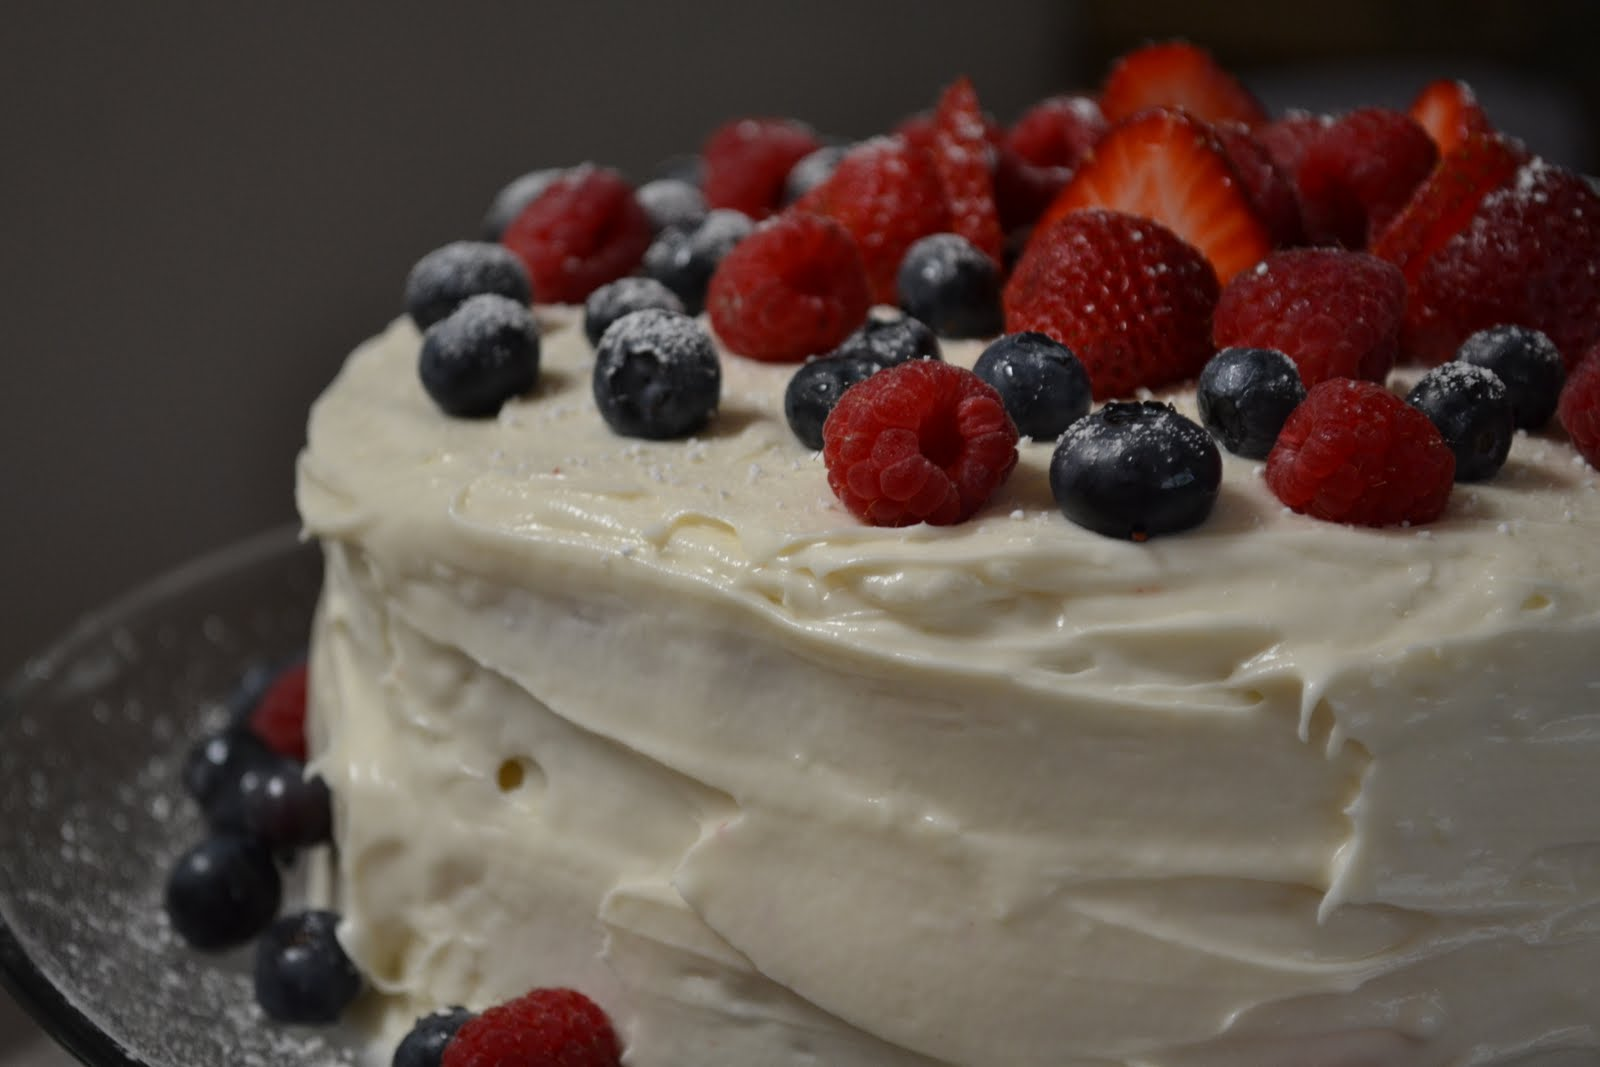 Red Velvet Cake With Raspberries And Blueberries Recipe ...